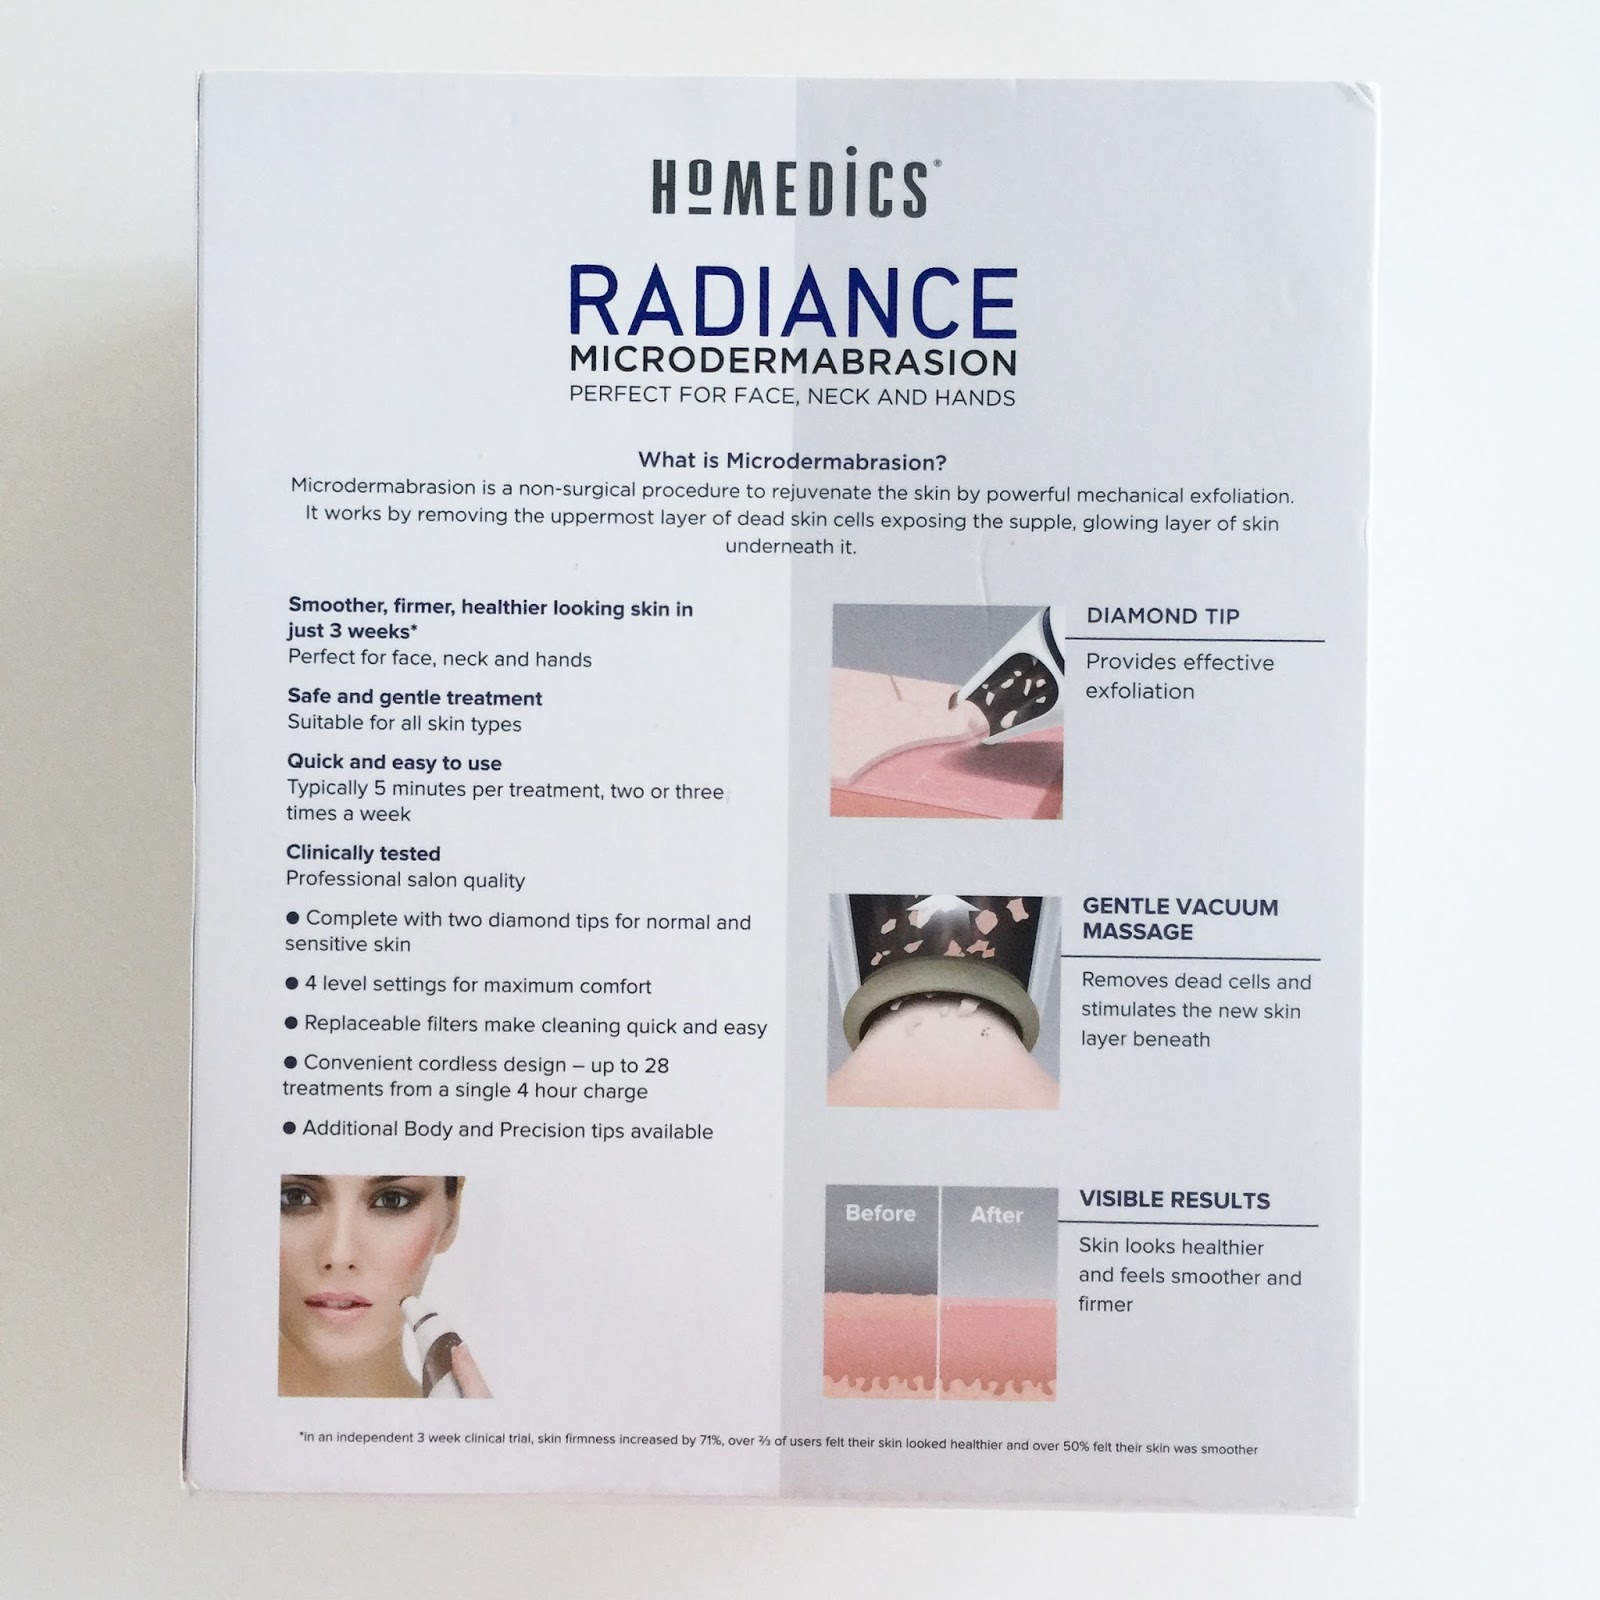 PRODUCT REVIEW: HOMEDICS RADIANCE MICRODERMABRATION | The Beauty